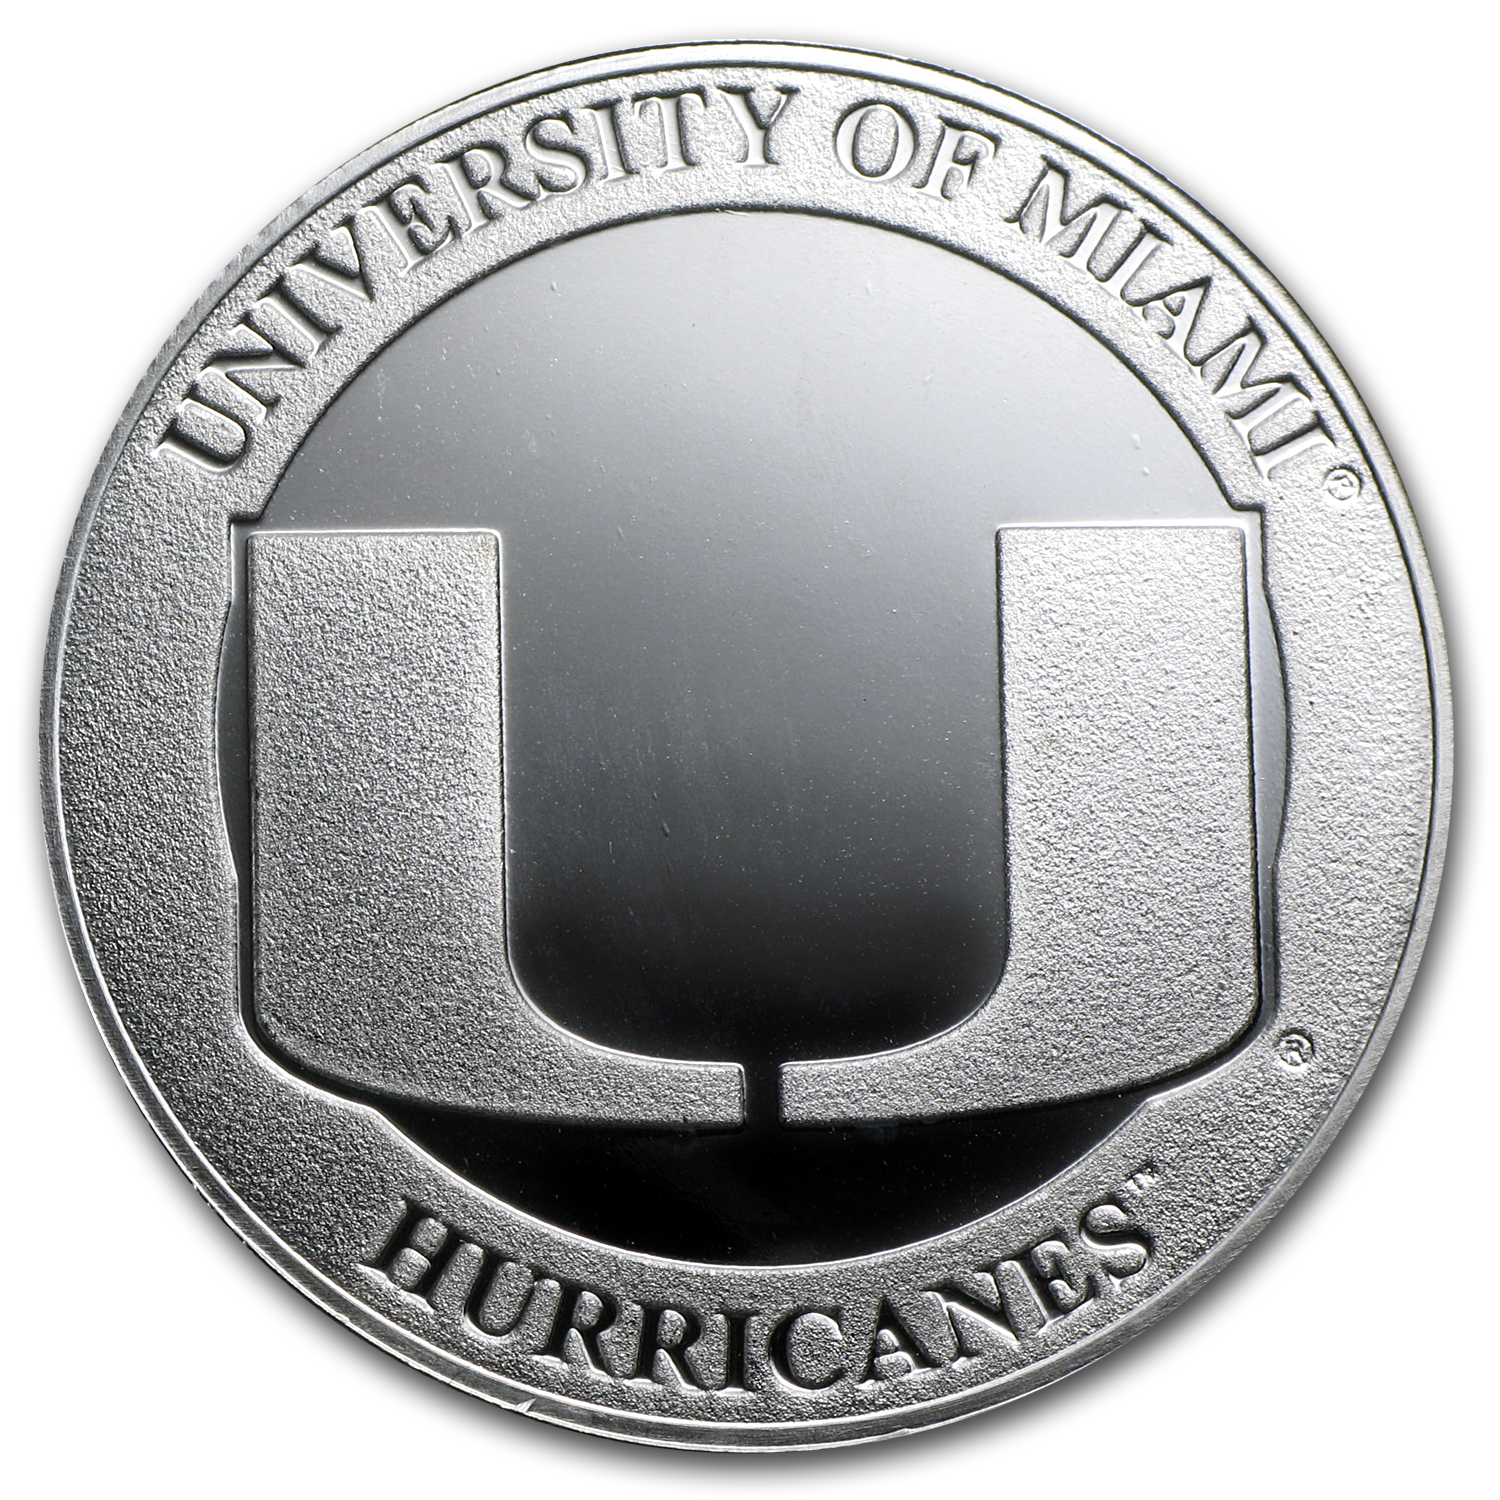 1 oz Silver Round - University of Miami